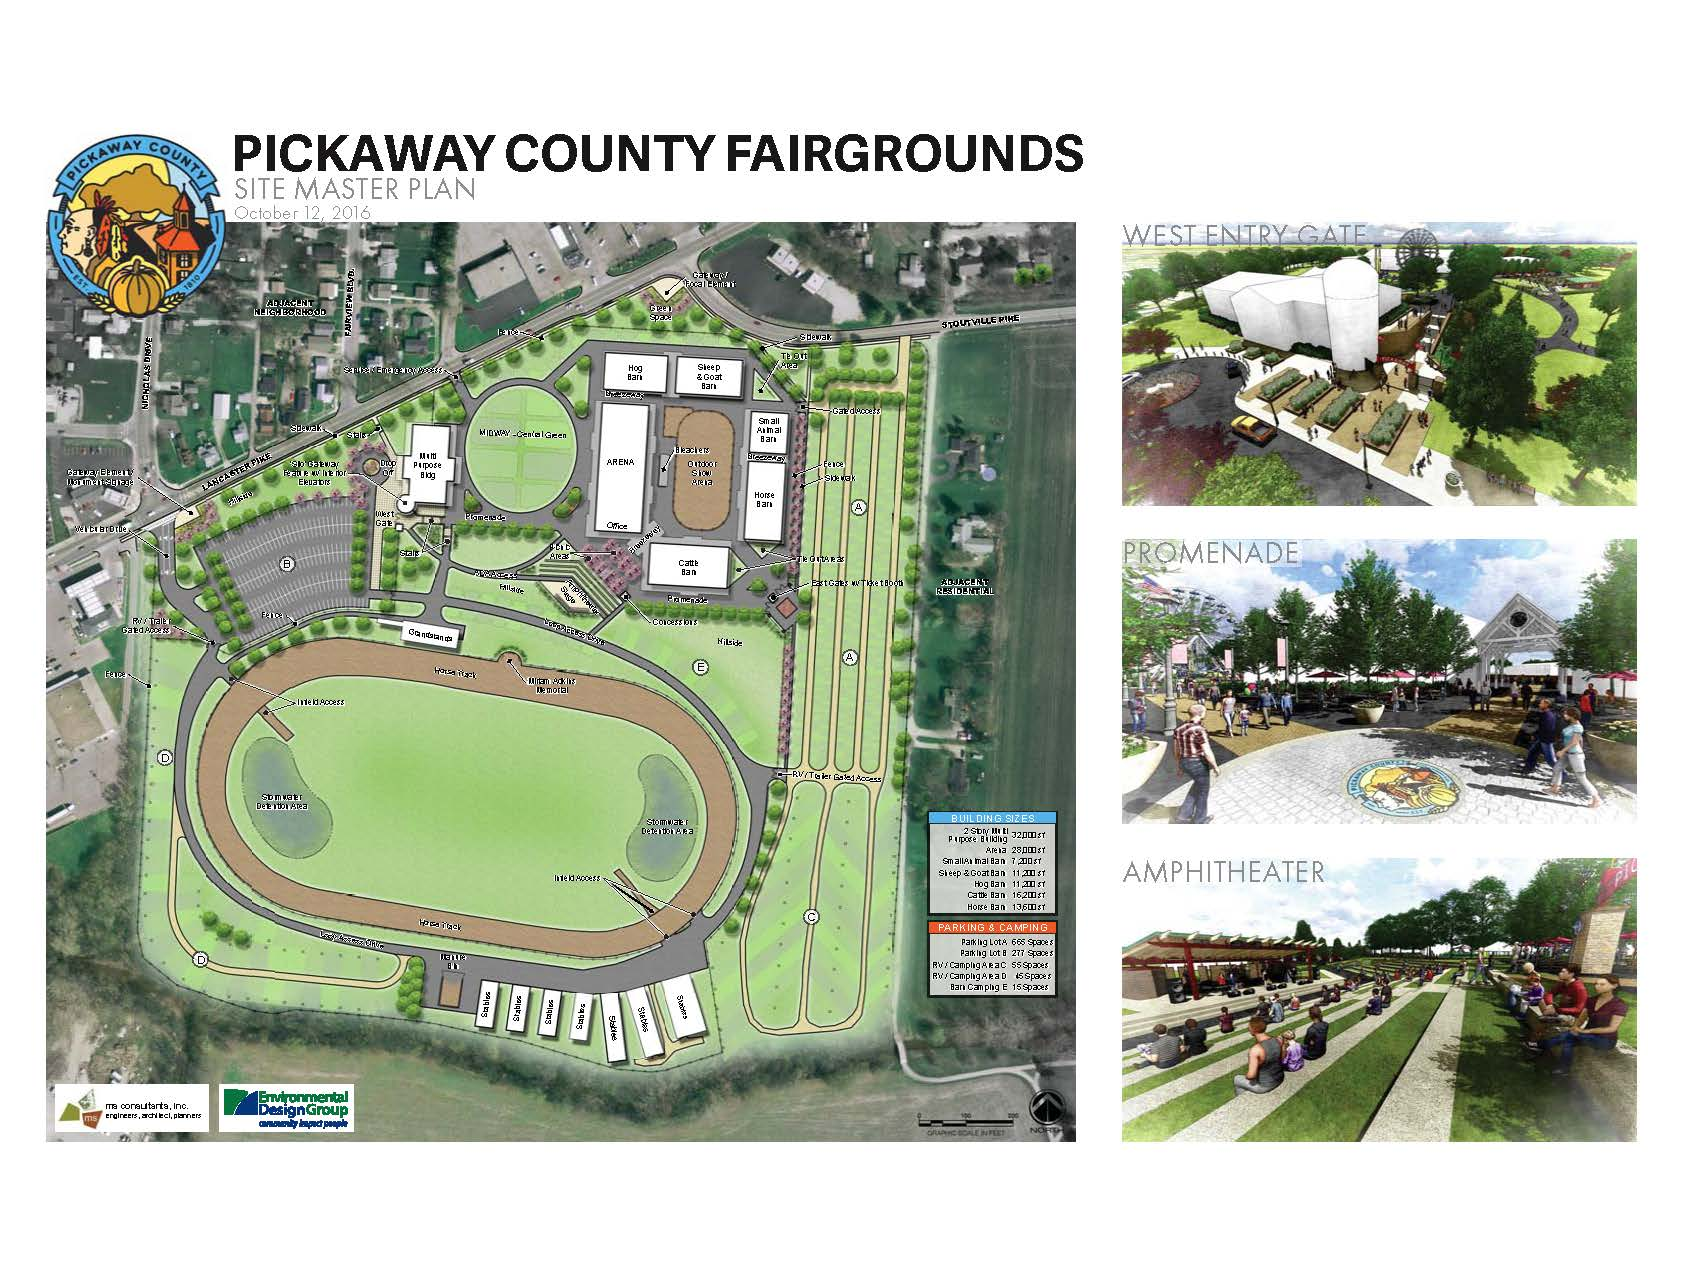 pickaway county Embed (for wordpresscom hosted blogs and archiveorg item  tags.